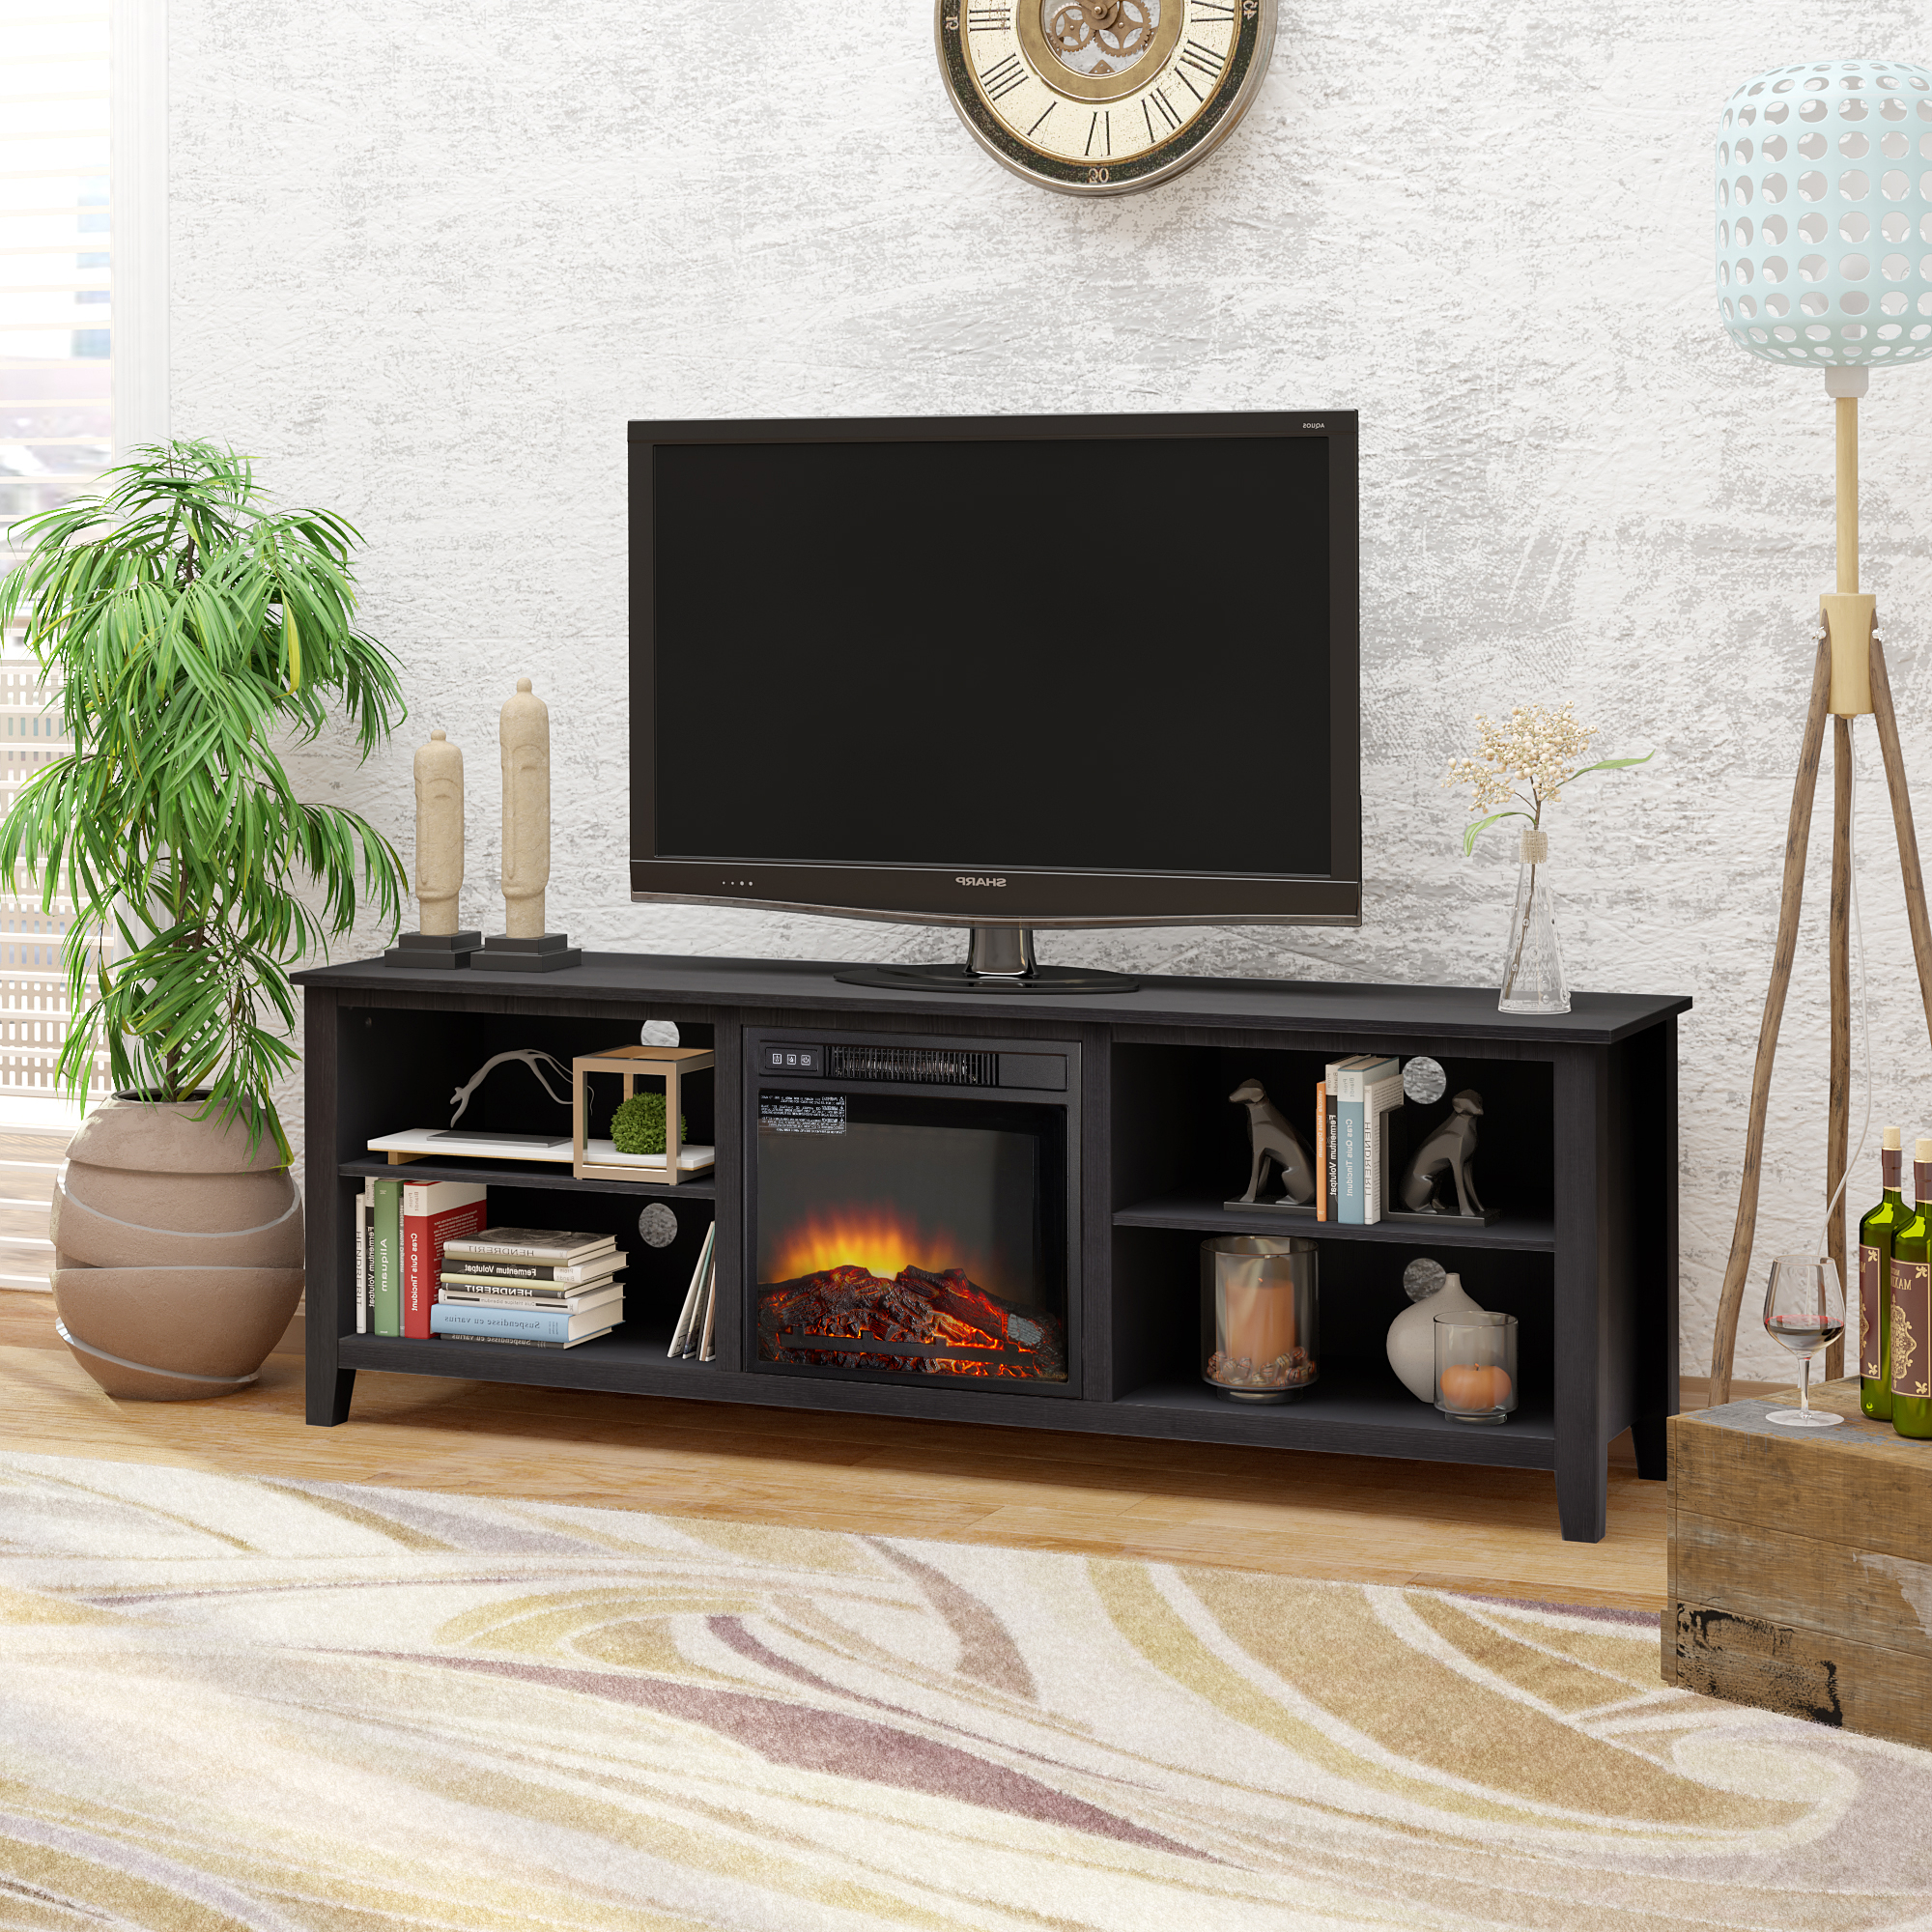 """70"""" Tv Stand Fireplace Media Console For Tvs Up To 80 Throughout Mainor Tv Stands For Tvs Up To 70"""" (View 2 of 20)"""